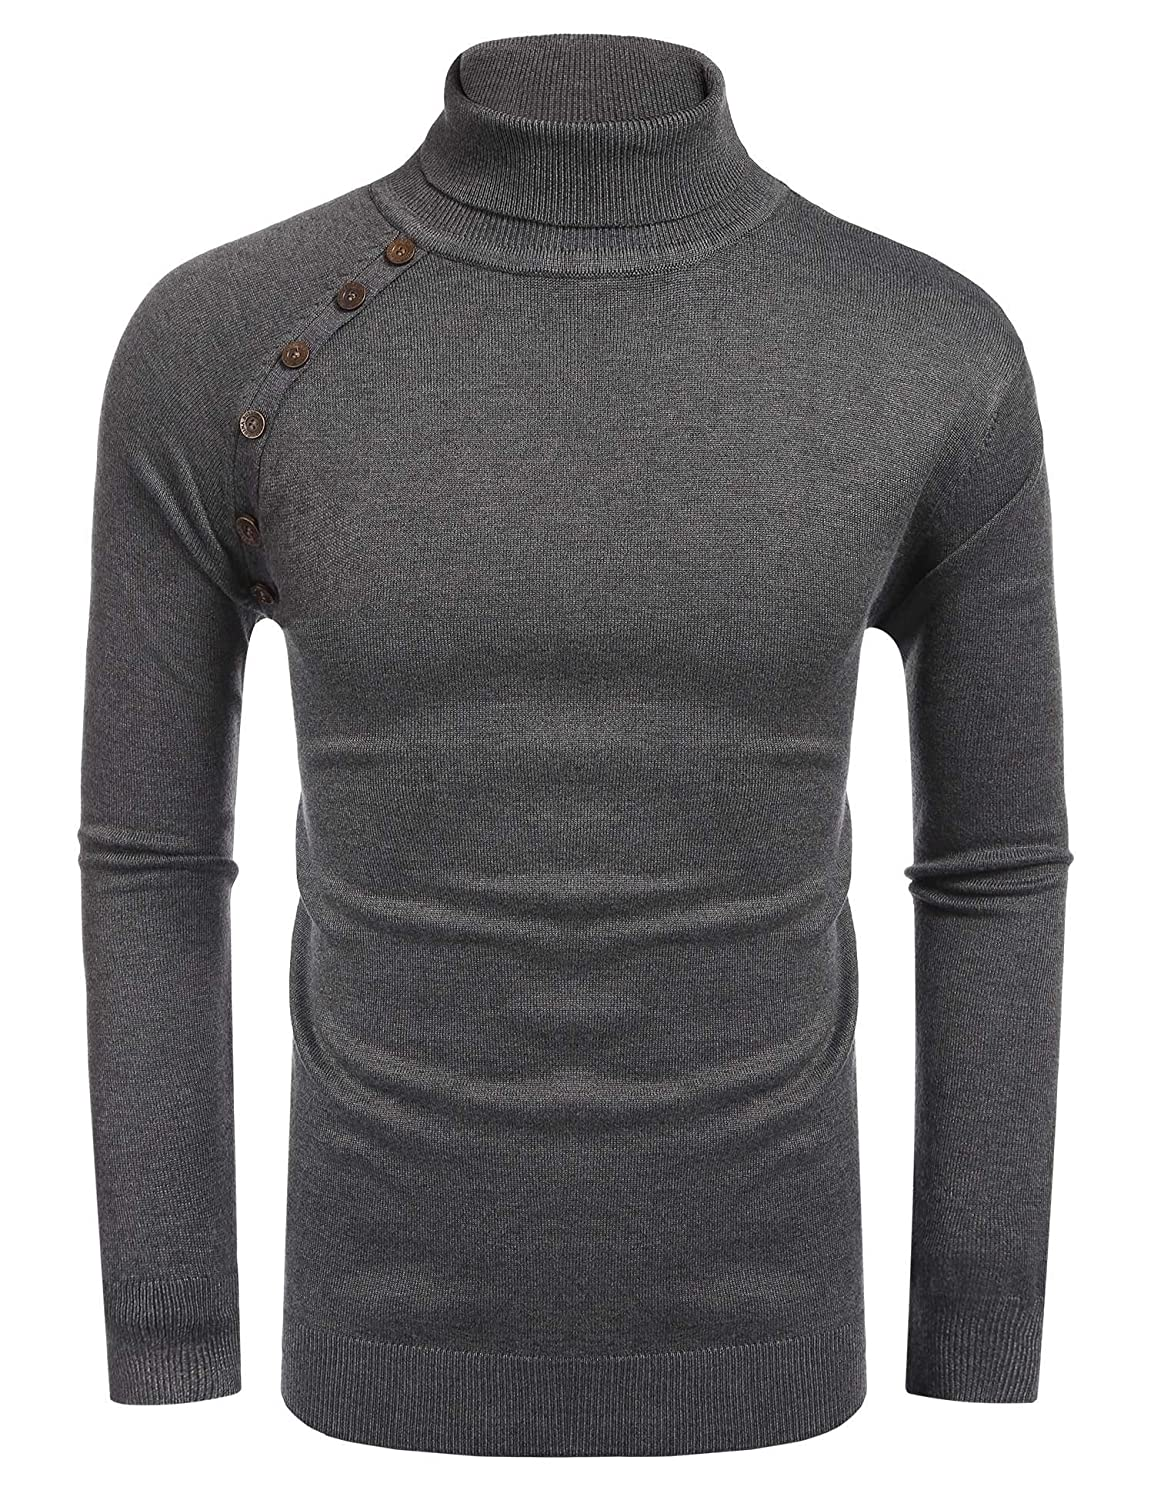 COOFANDY Men's Knitted Ribbed Turtleneck Pullover Sweaters with Buttons XSJ006561